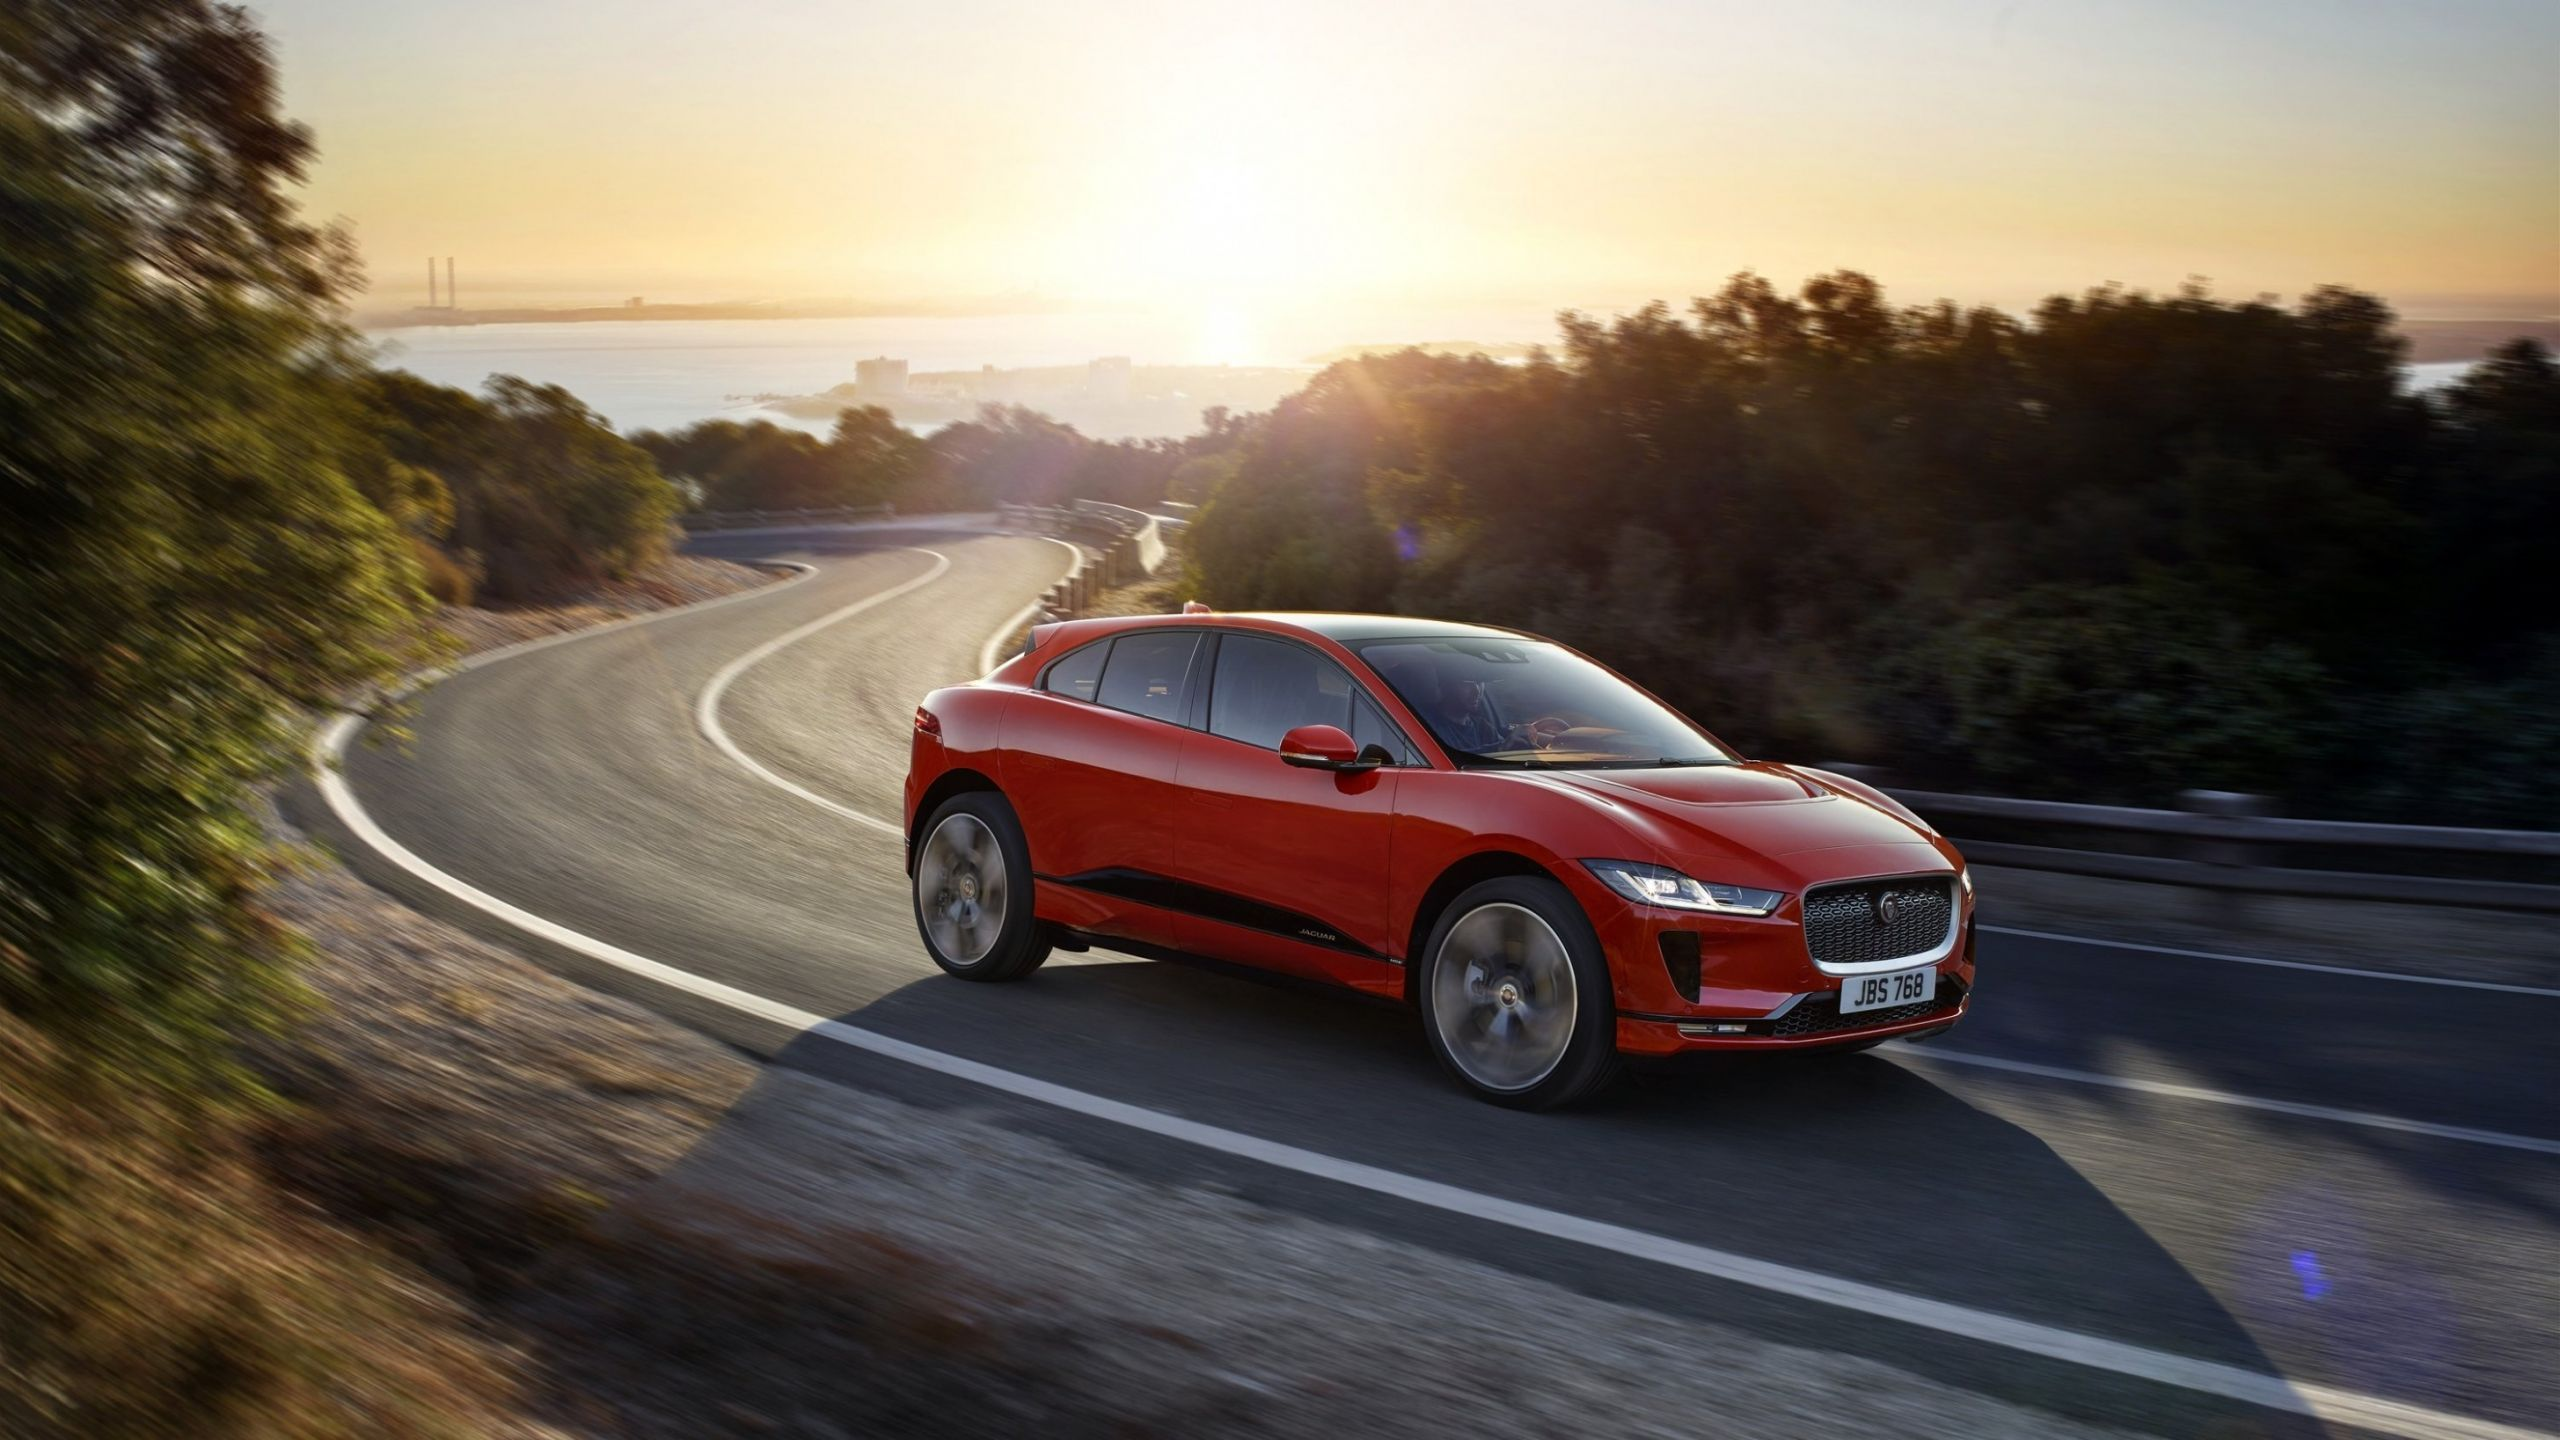 2020 Jaguar Xq Crossover Concept and Review